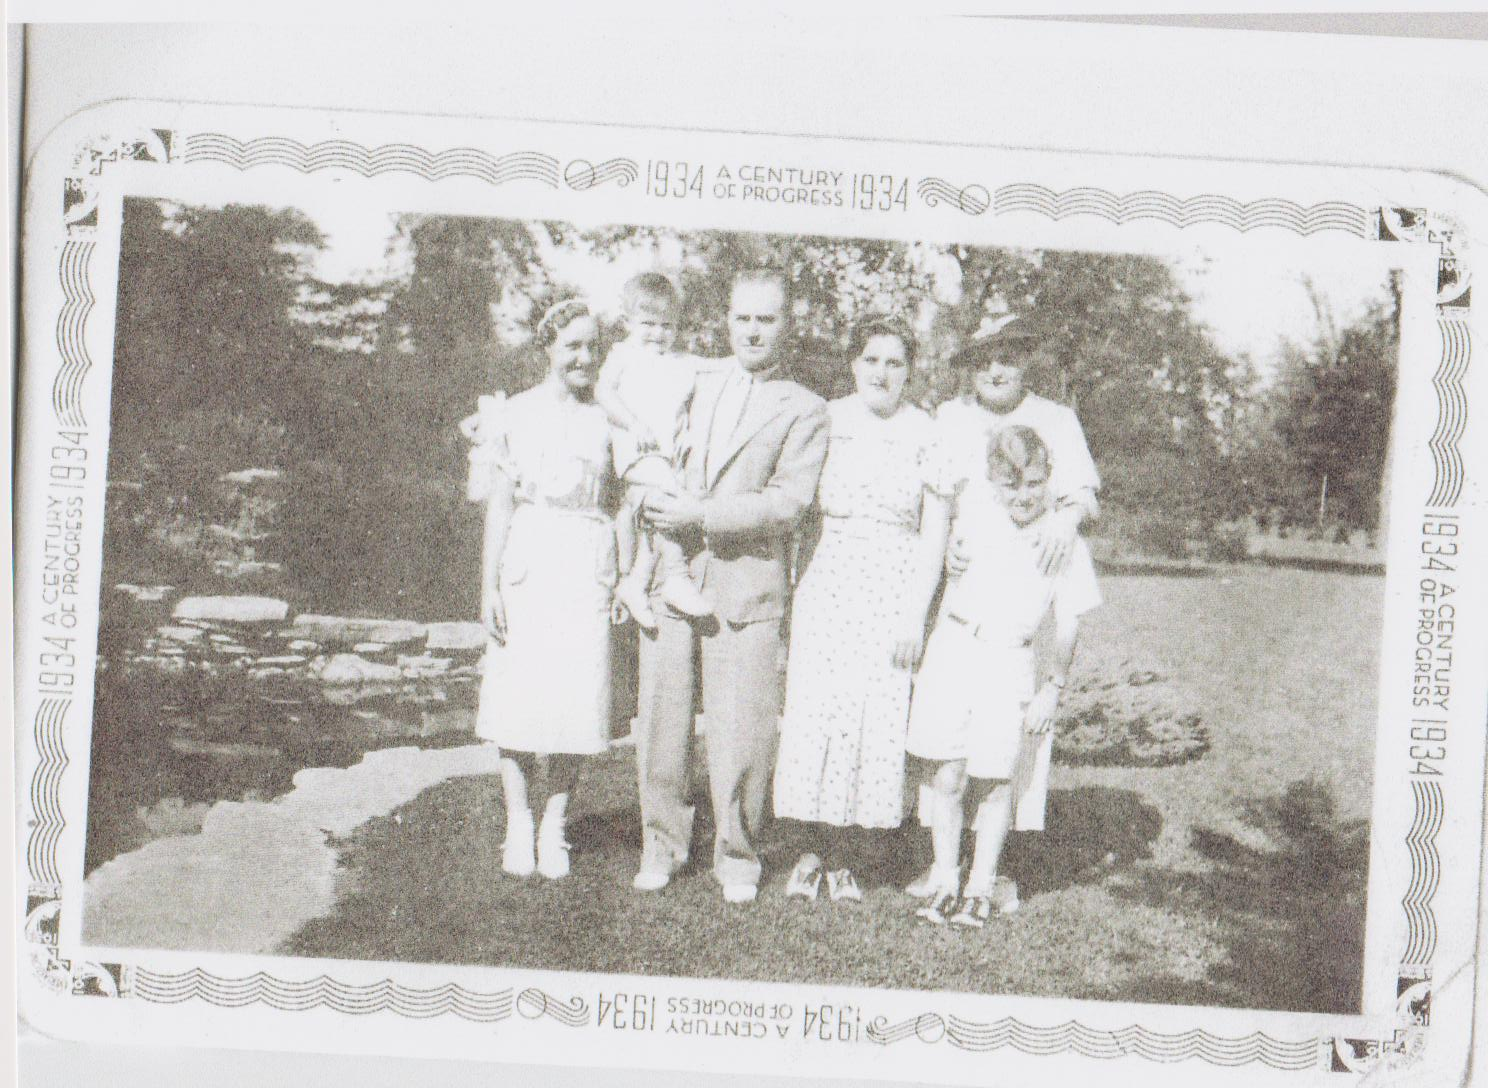 THE MAYBELLINE STORY : The original Maybelline Family from Kentucky ...